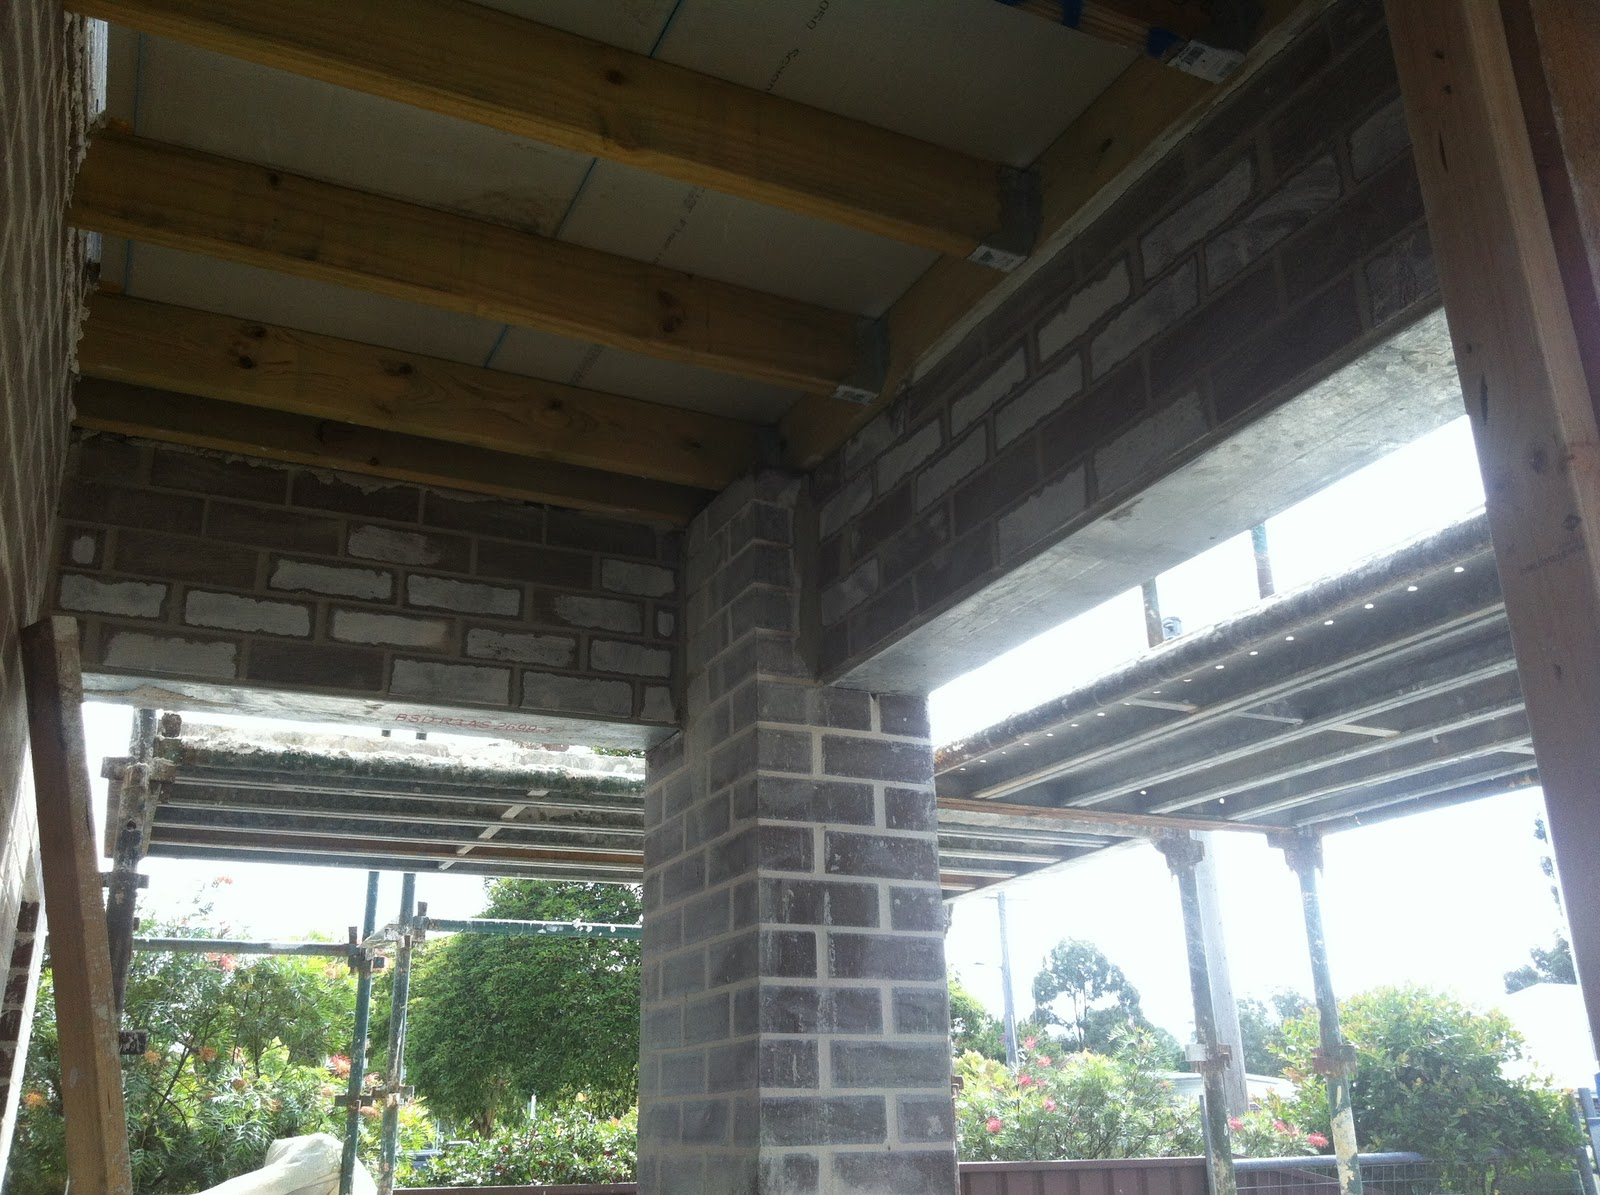 The Glenleigh Project Garage Roof Amp Balcony Posts Day 133